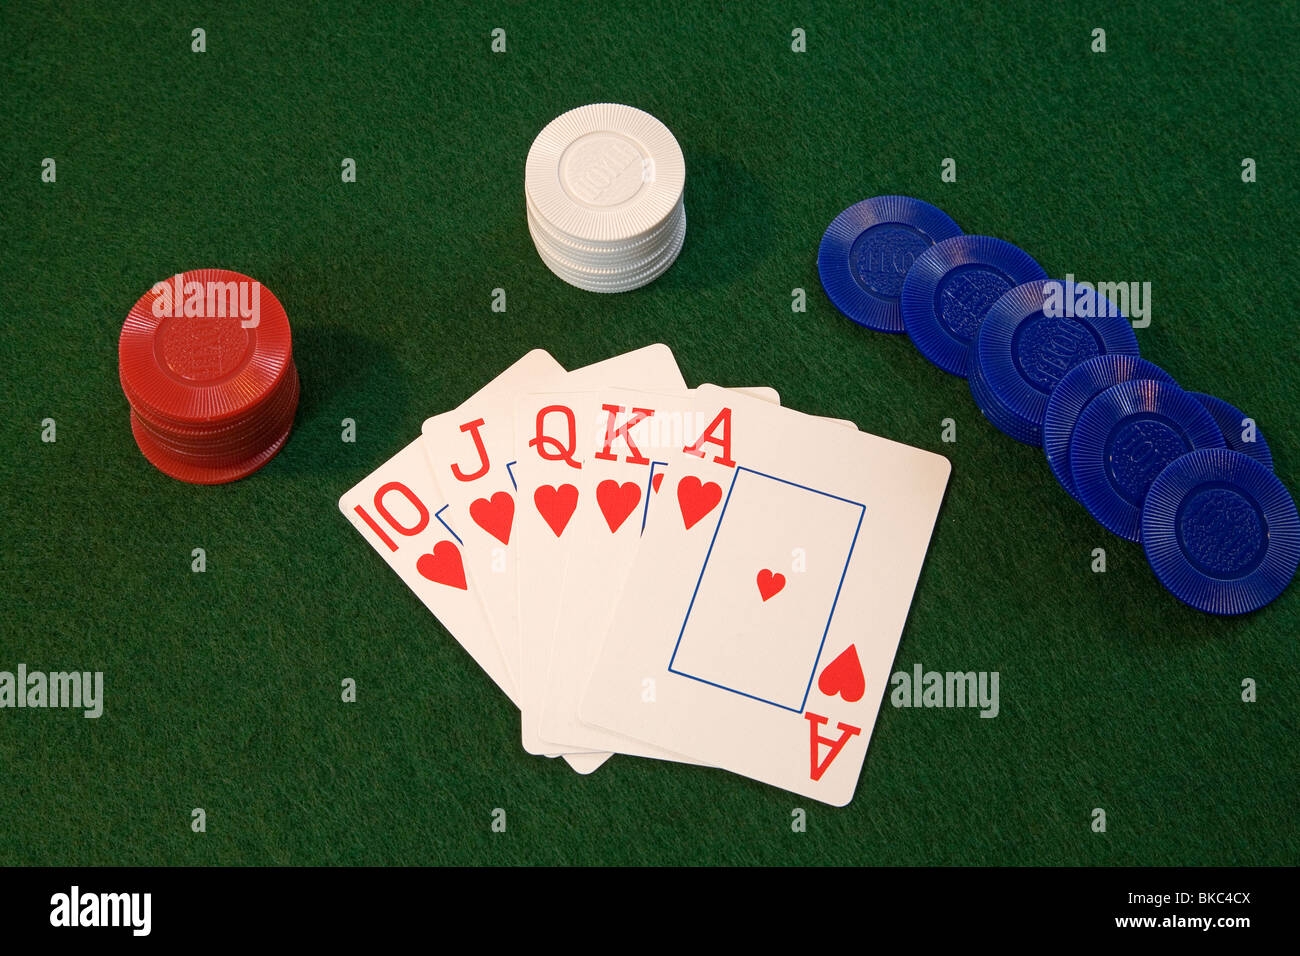 Five Card Draw Instructions